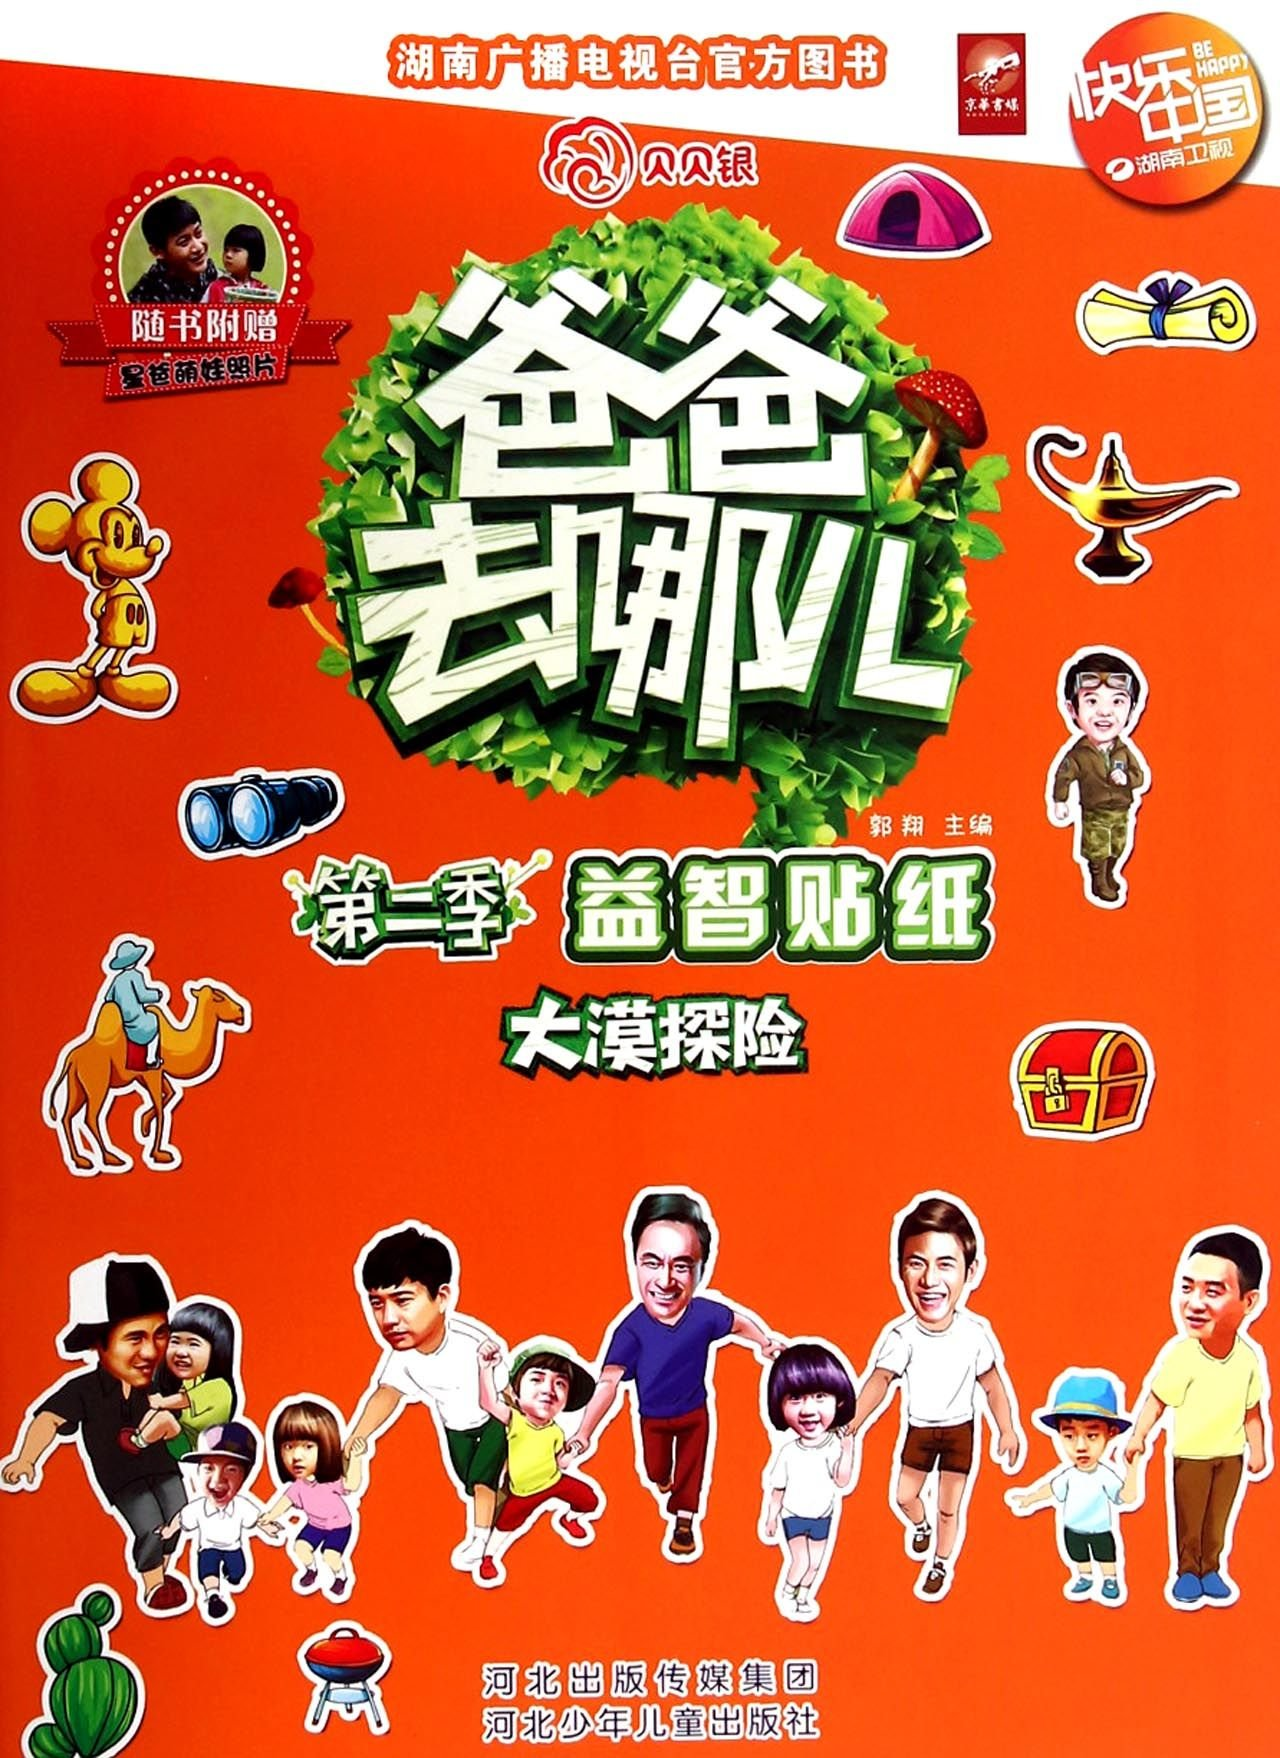 Where Dad Puzzle stickers - Desert Adventure (each are presented in this adorable baby photo star dad. suits and more sent autographed photos Collector's Edition collective expression containing Meng doll stickers 200. other stick...(Chinese Edition) PDF